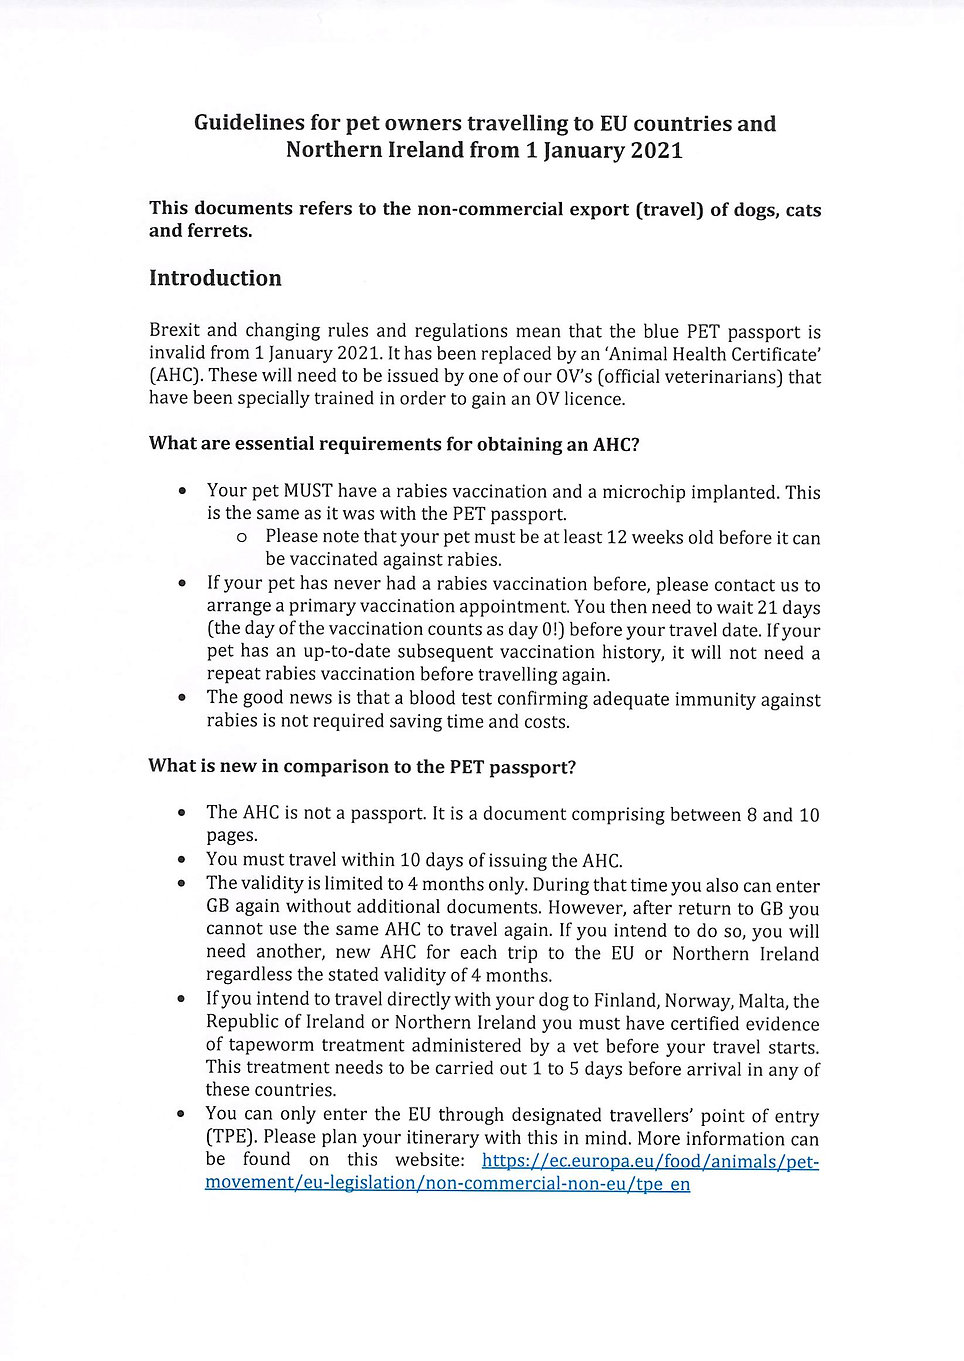 Guidelines for pet owners travelling to EU countries and Northern Ireland from 01.01.21.jp